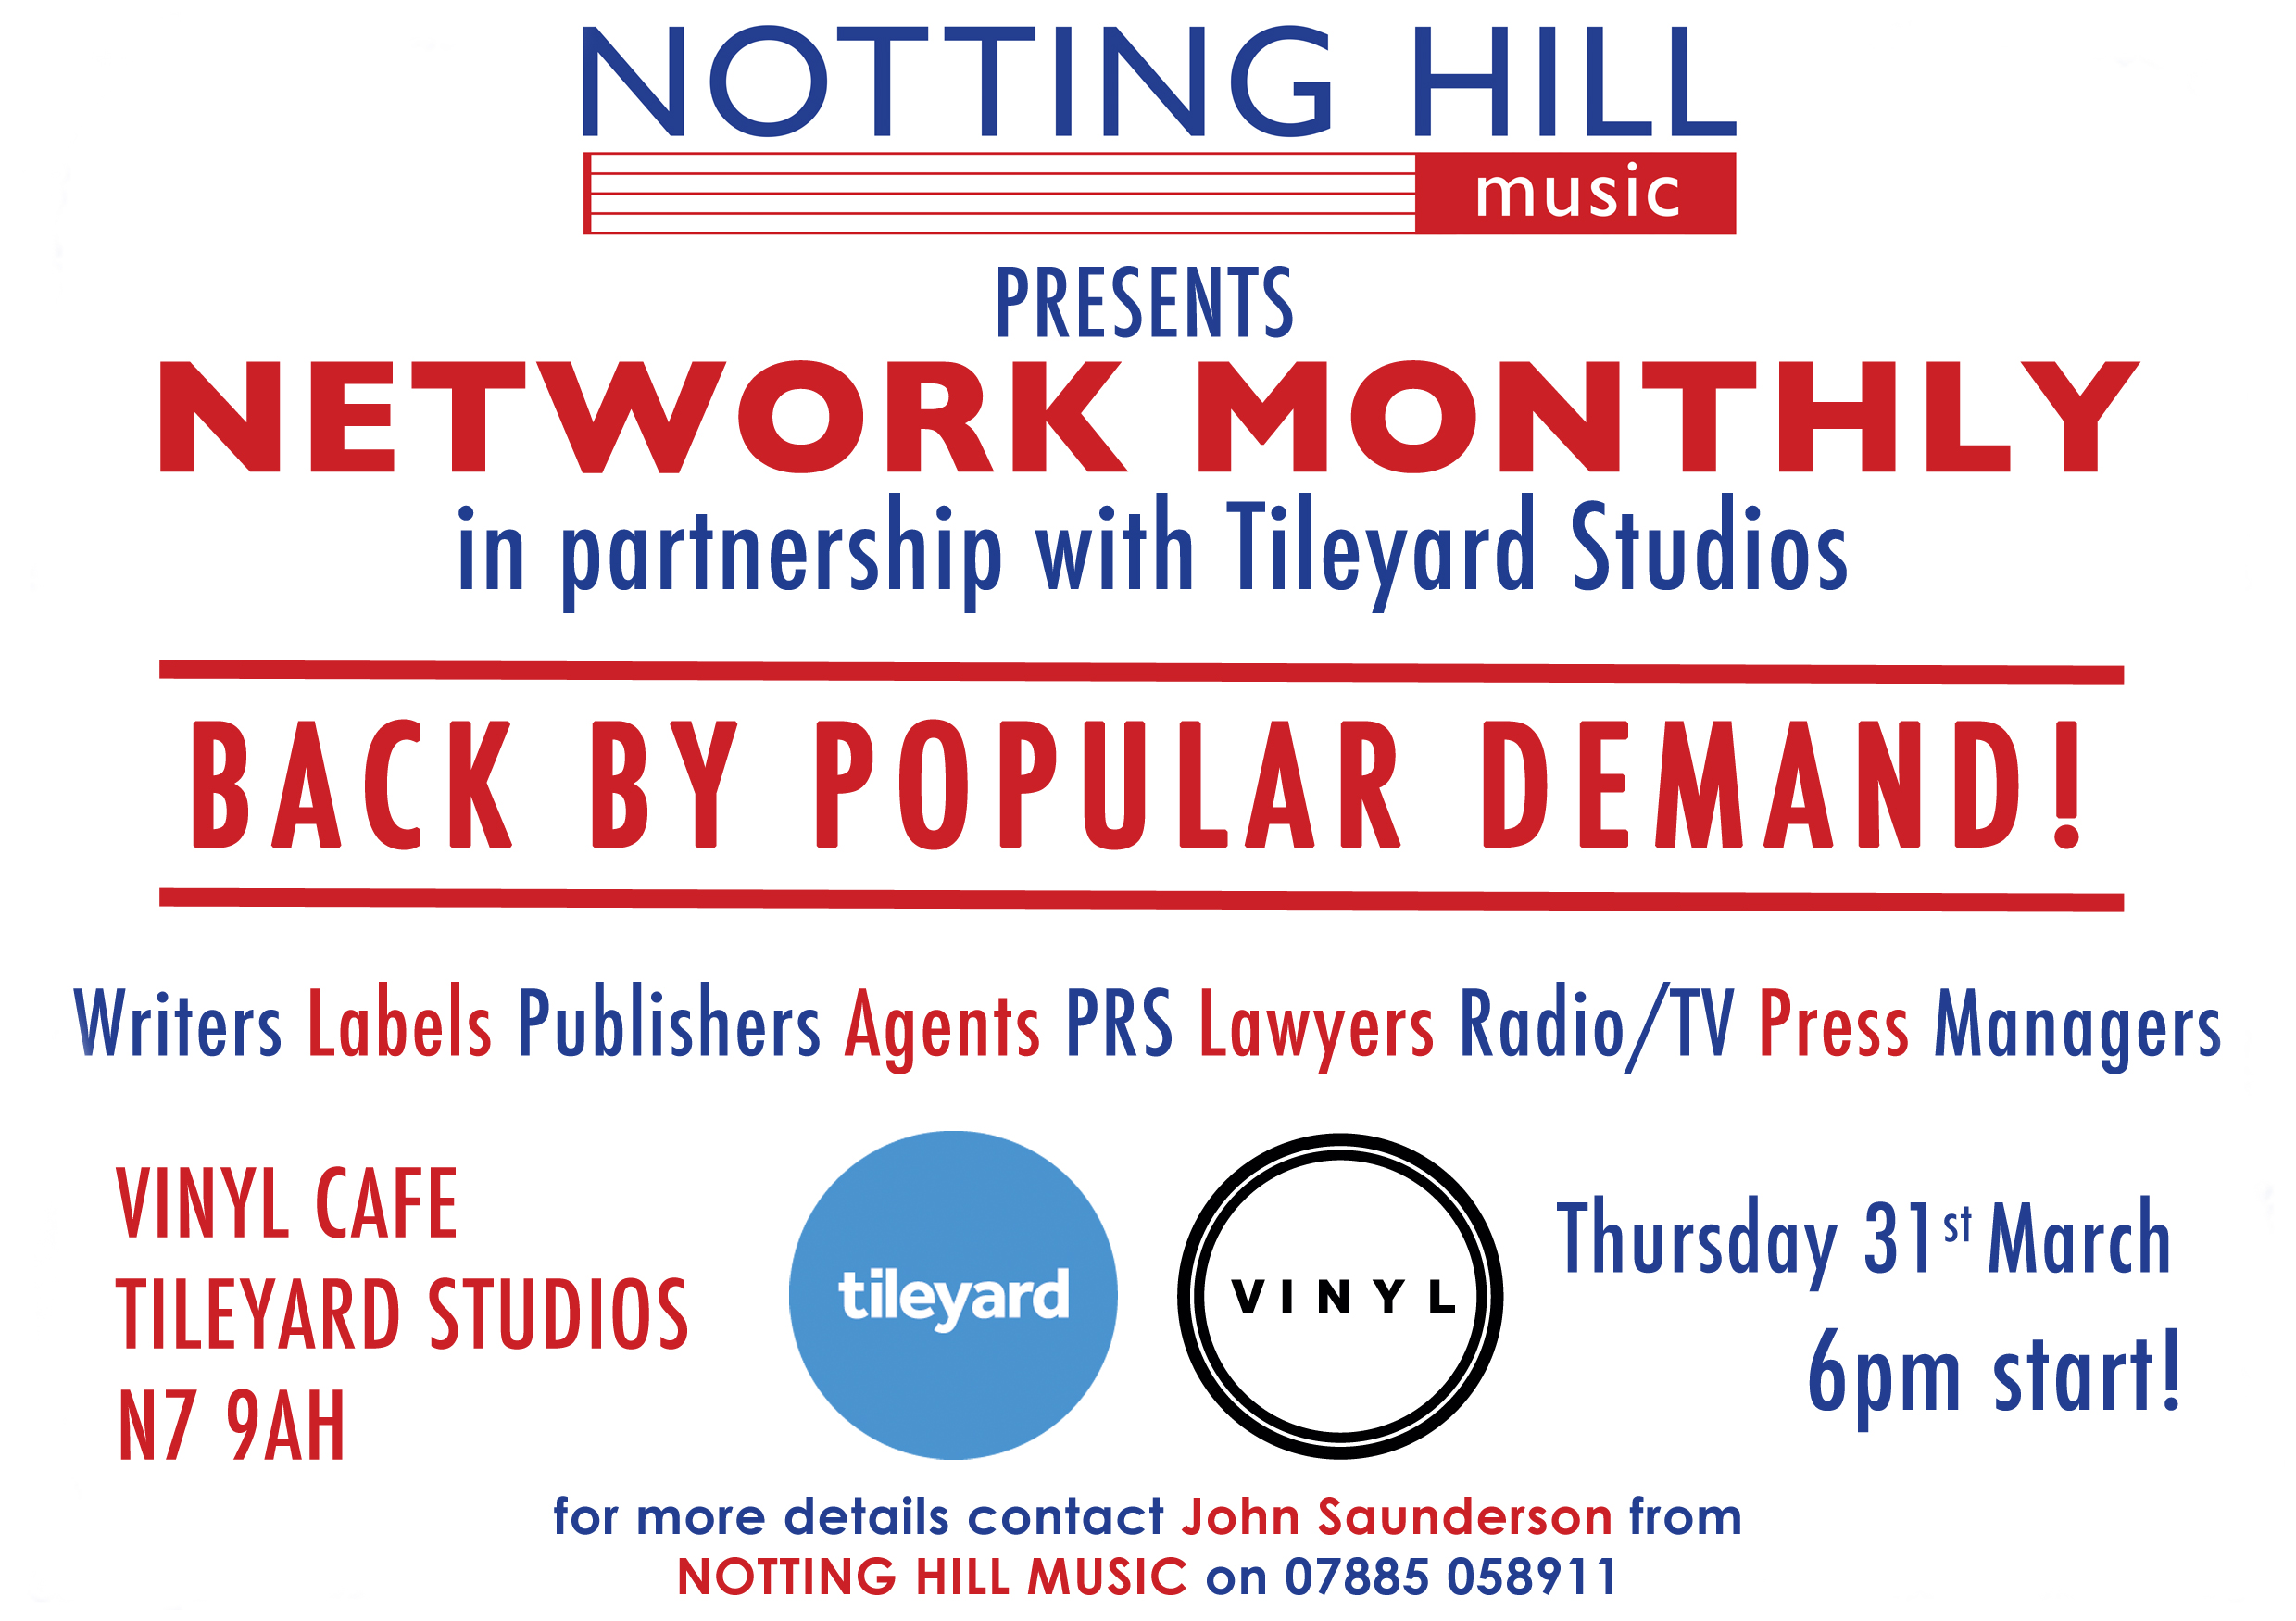 Events Notting Hill Music